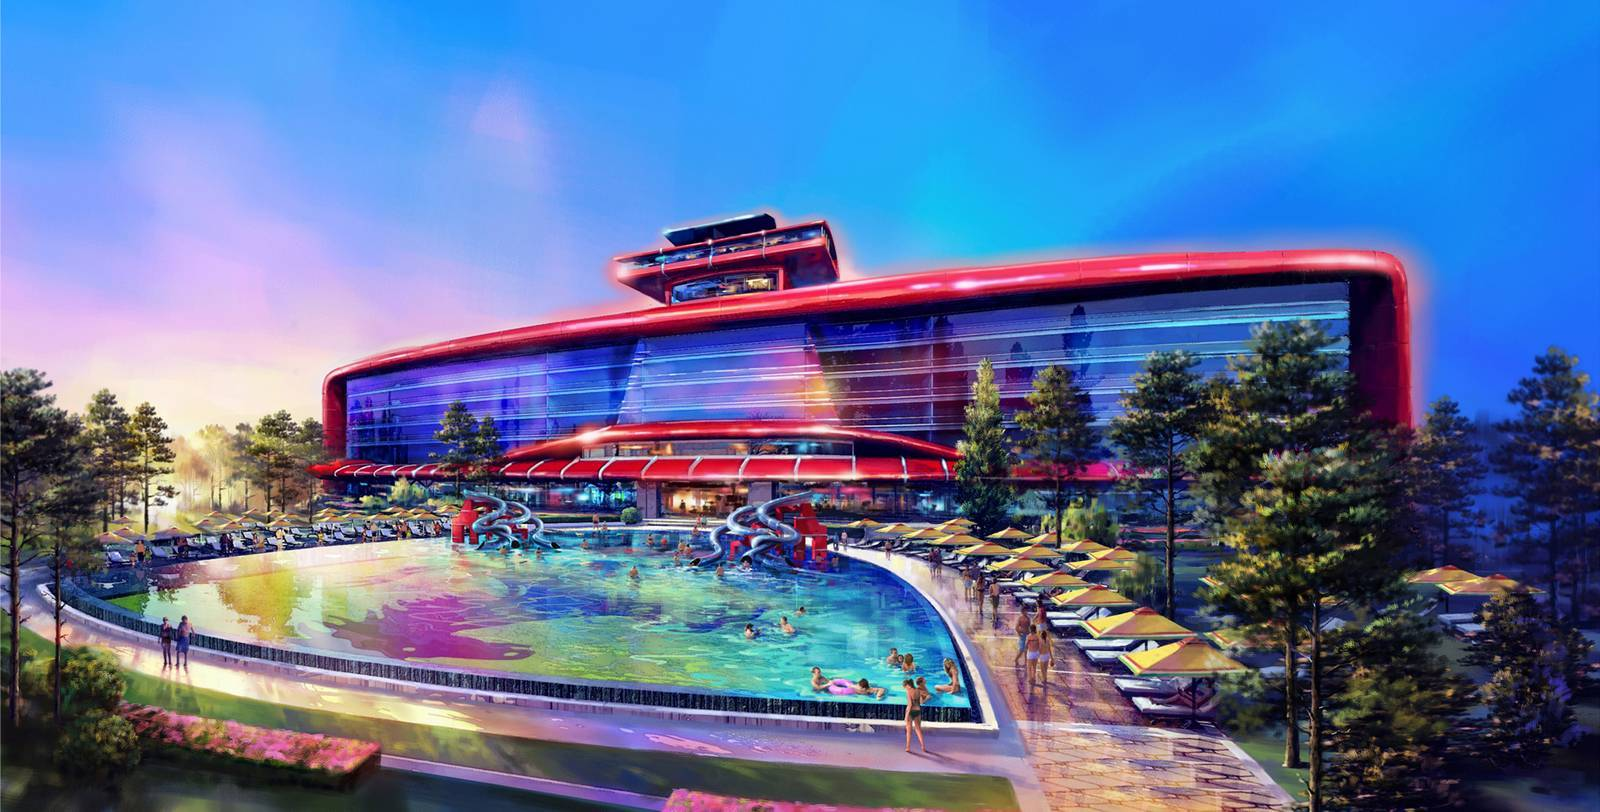 Ferrari To Open Theme Park And 5 Star Hotel In Spain